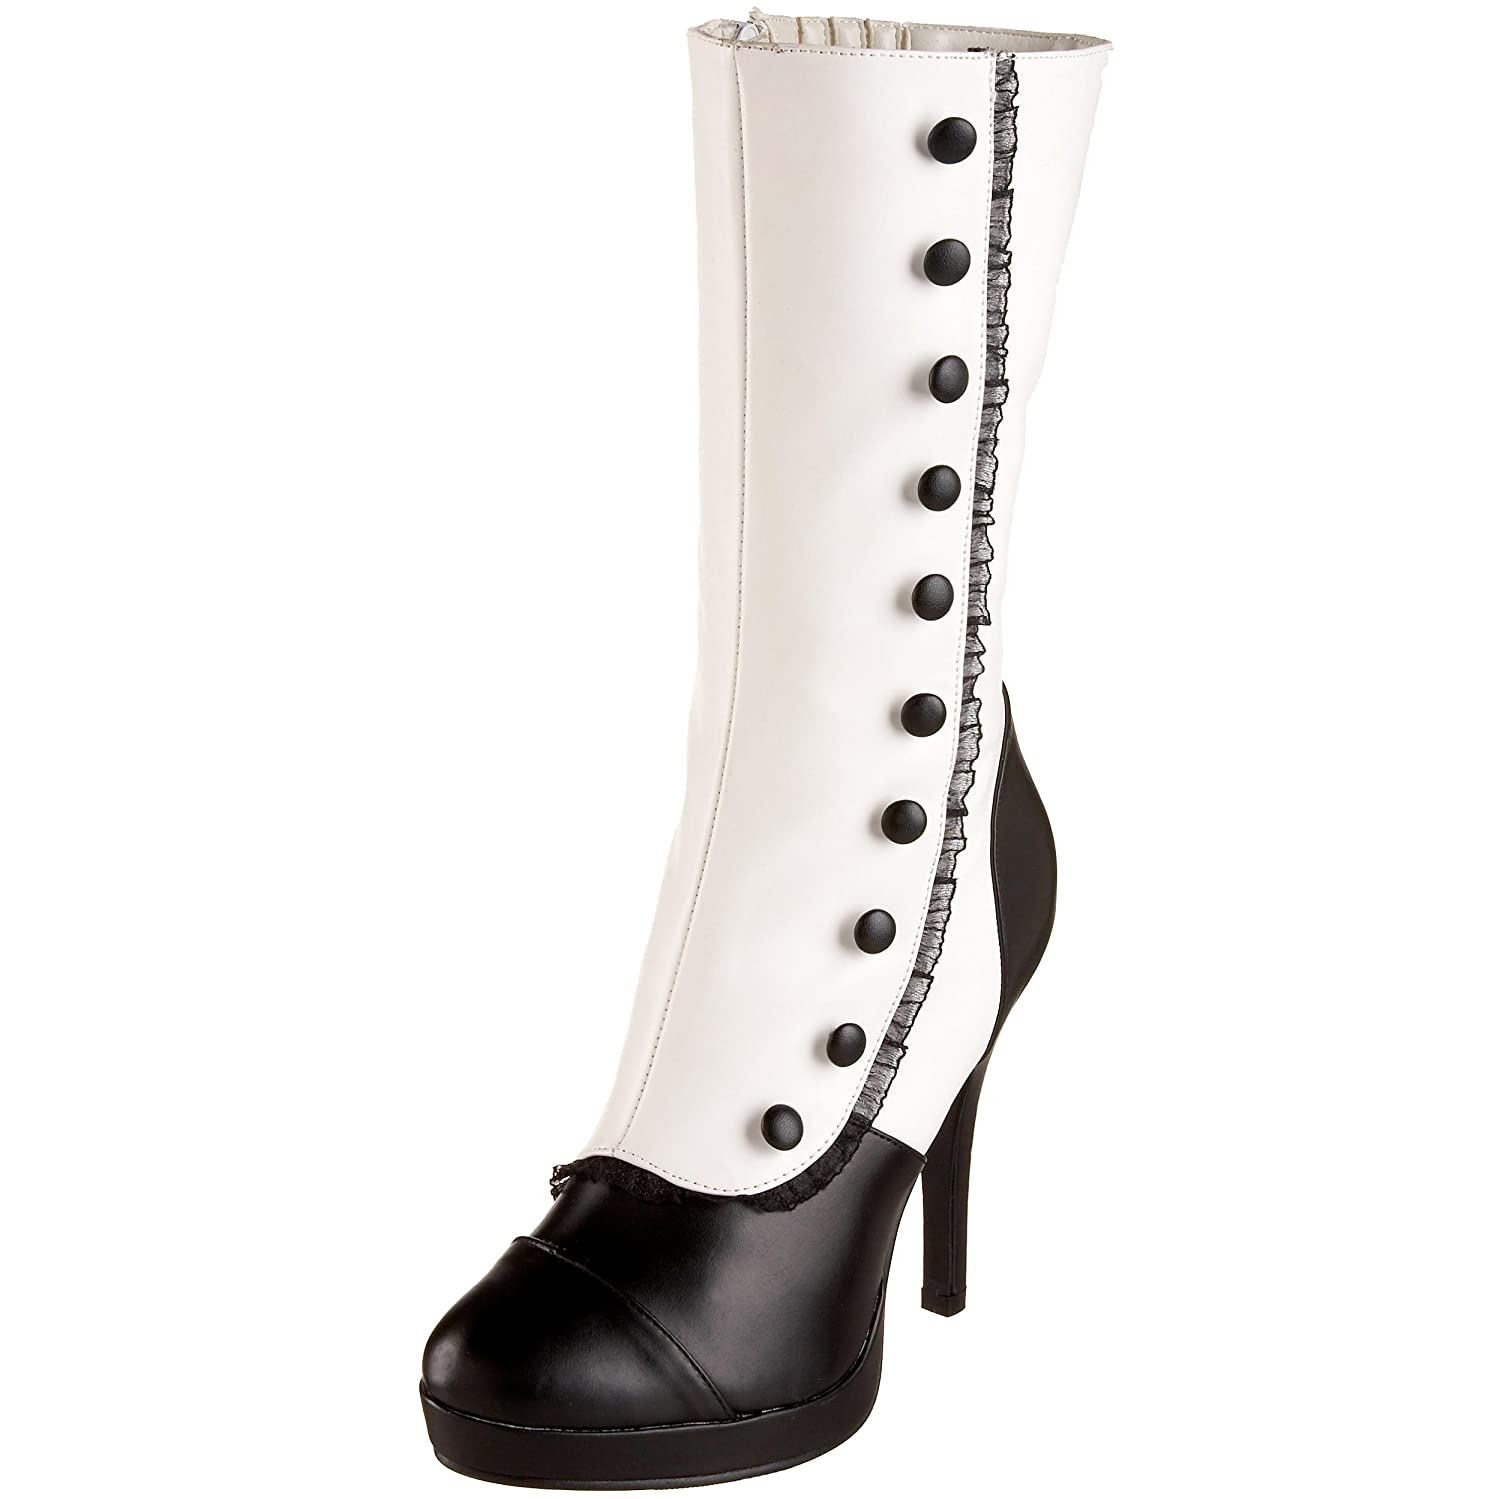 Vintage Boots, Granny Boots, Retro Boots Womens Splendor-130 Mid-Calf Boot $126.63 AT vintagedancer.com